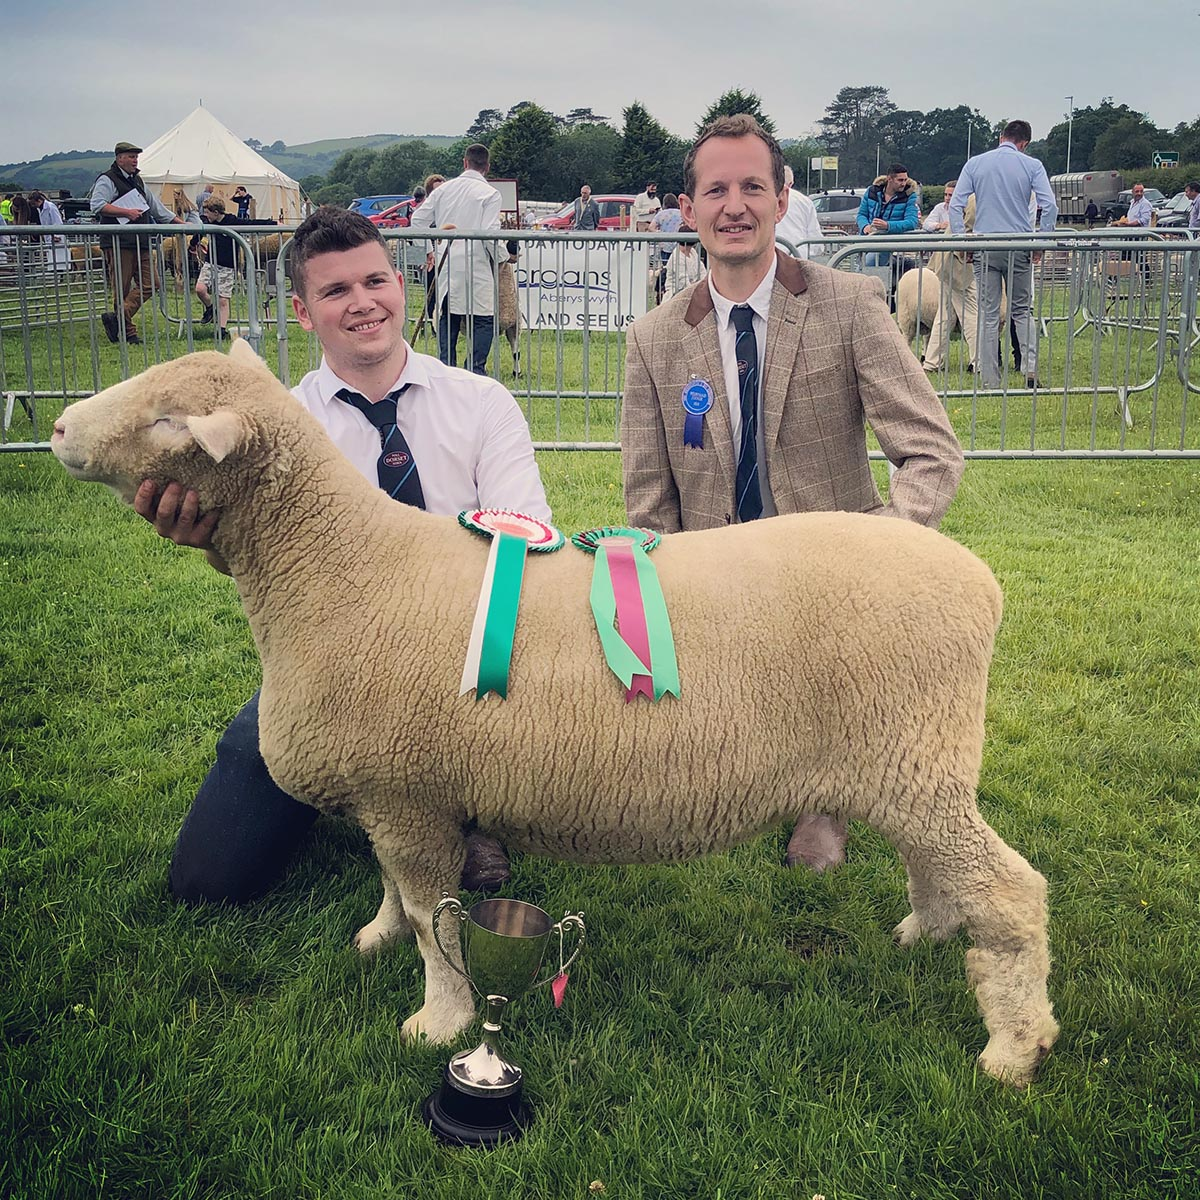 From left Llyr James & David Lewis, Judge, with the Champion